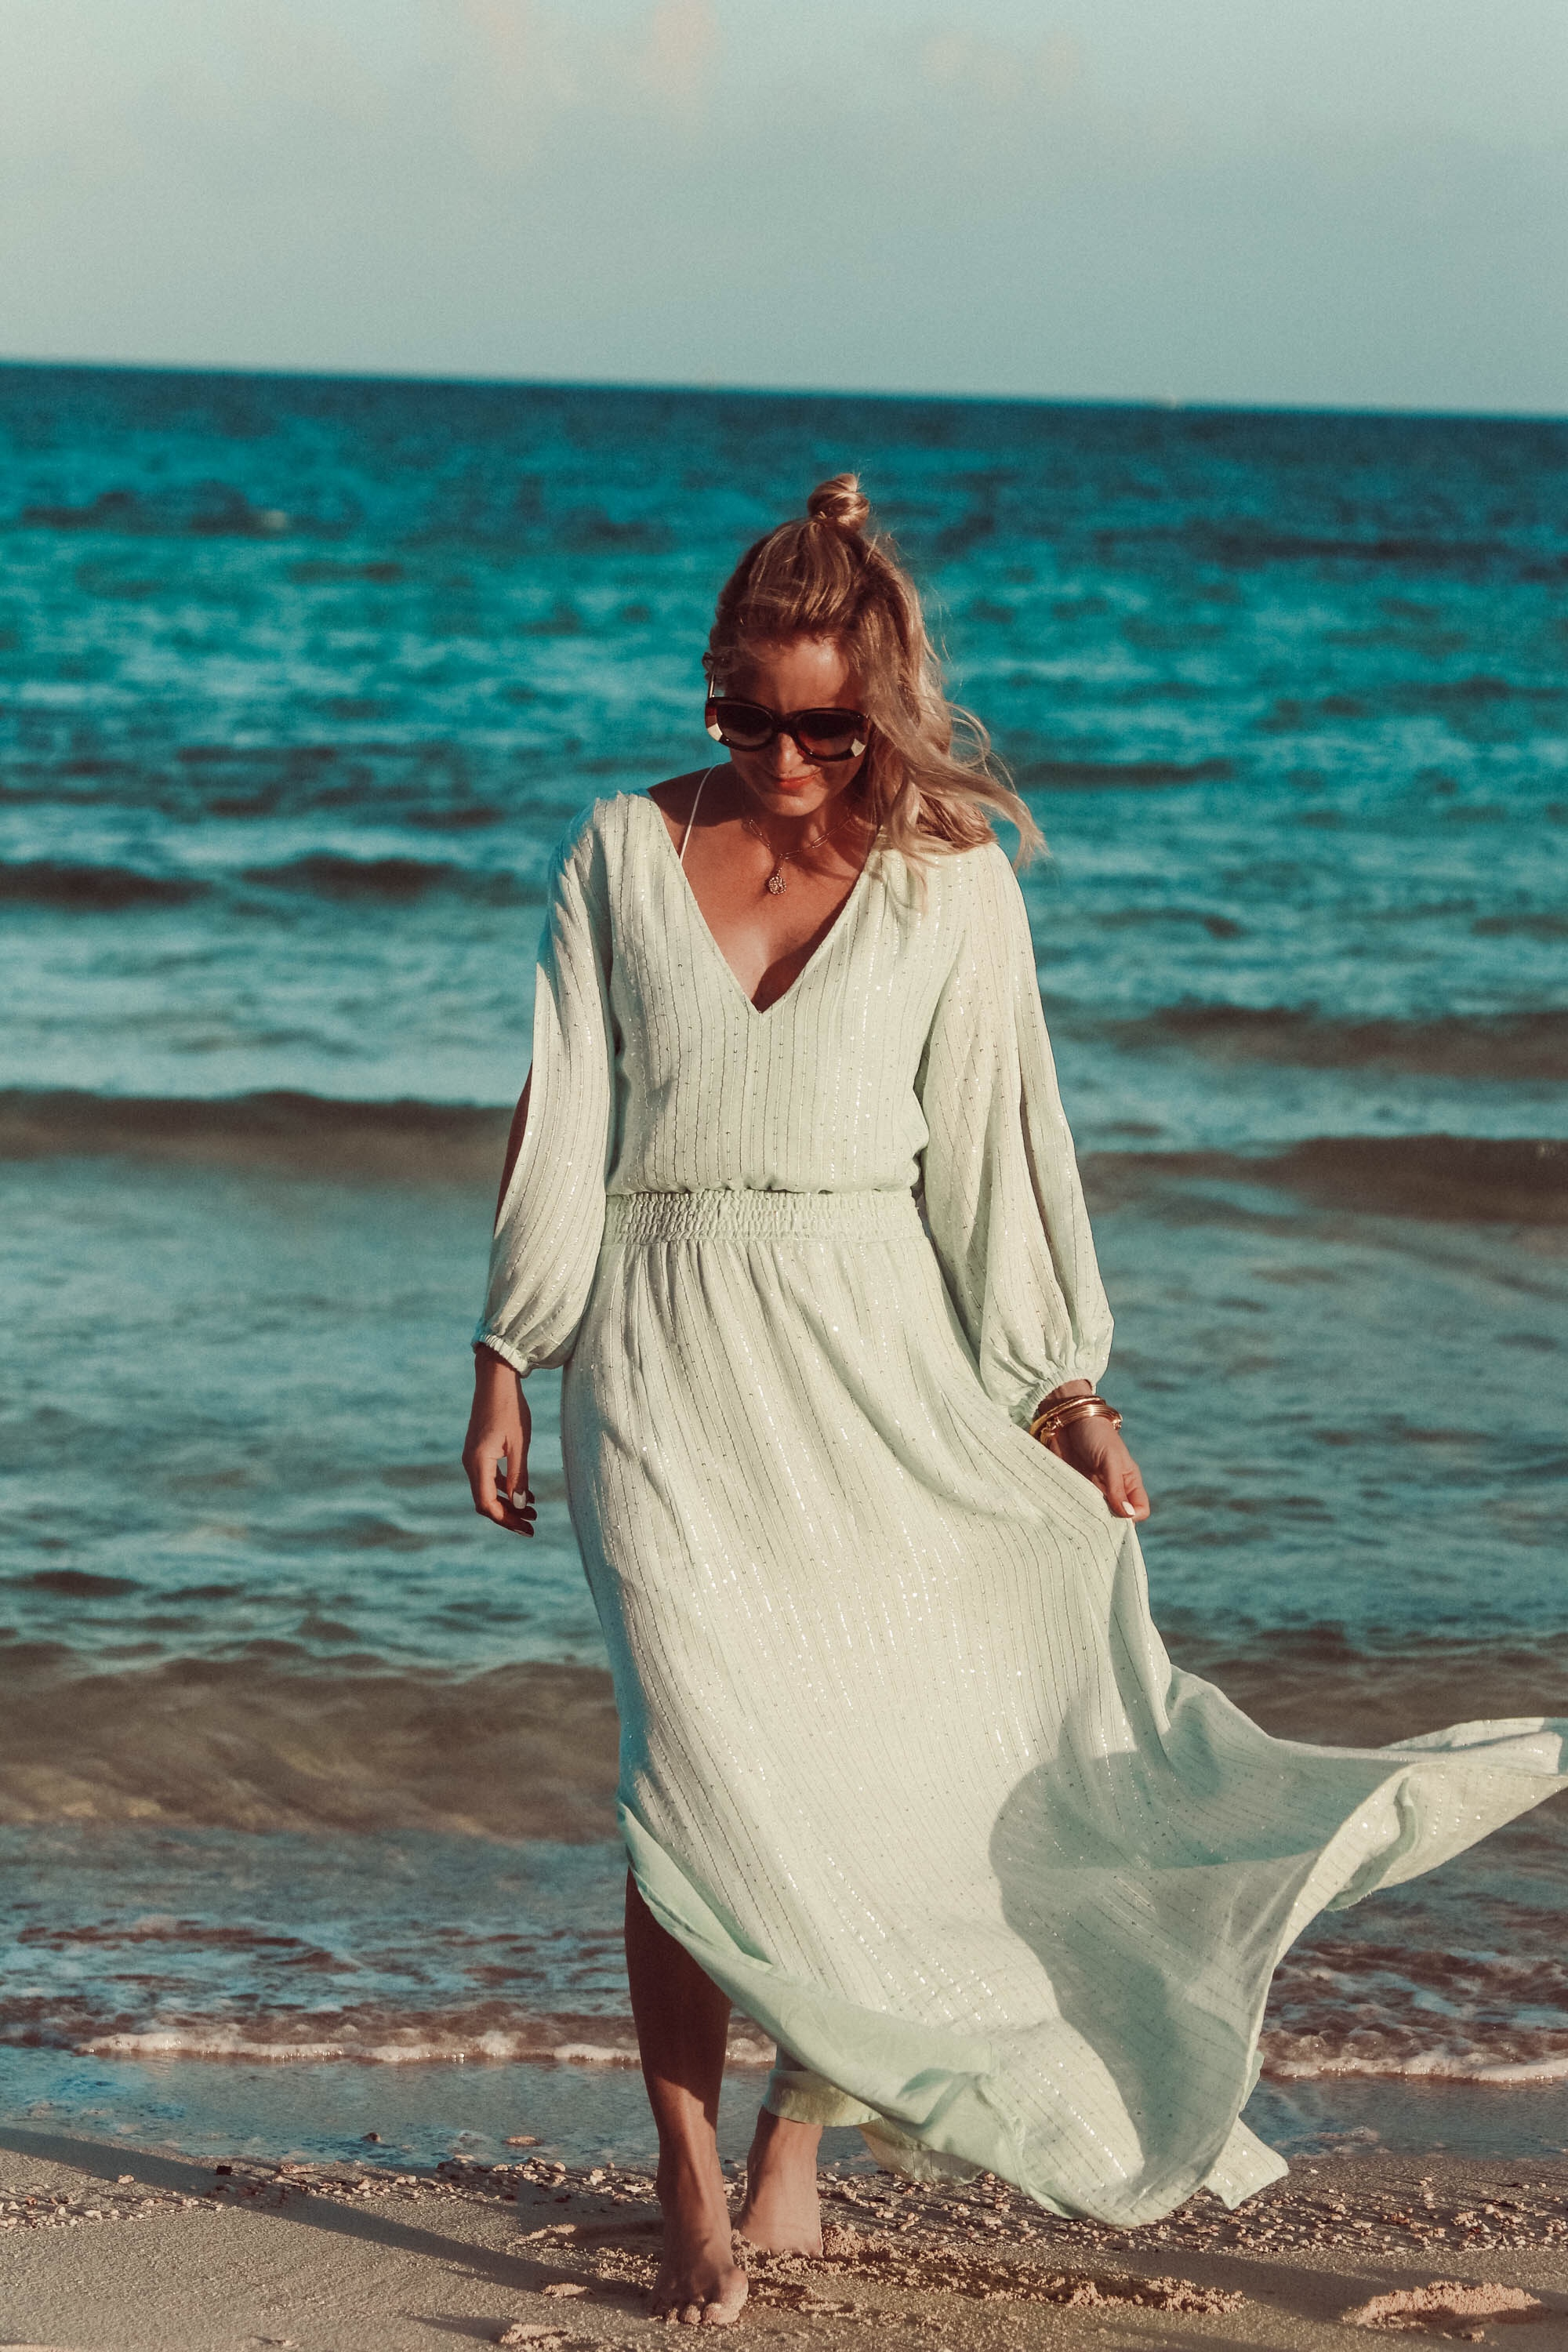 Maxi Dresses For Summer, Fashion blogger Erin Busbee of Busbee Style wearing a blue sequin maxi dress by Sundress, Chloe brown rainbow sunglasses, and Aligheri gold ritual necklace walking on the beach in the Bahamas,